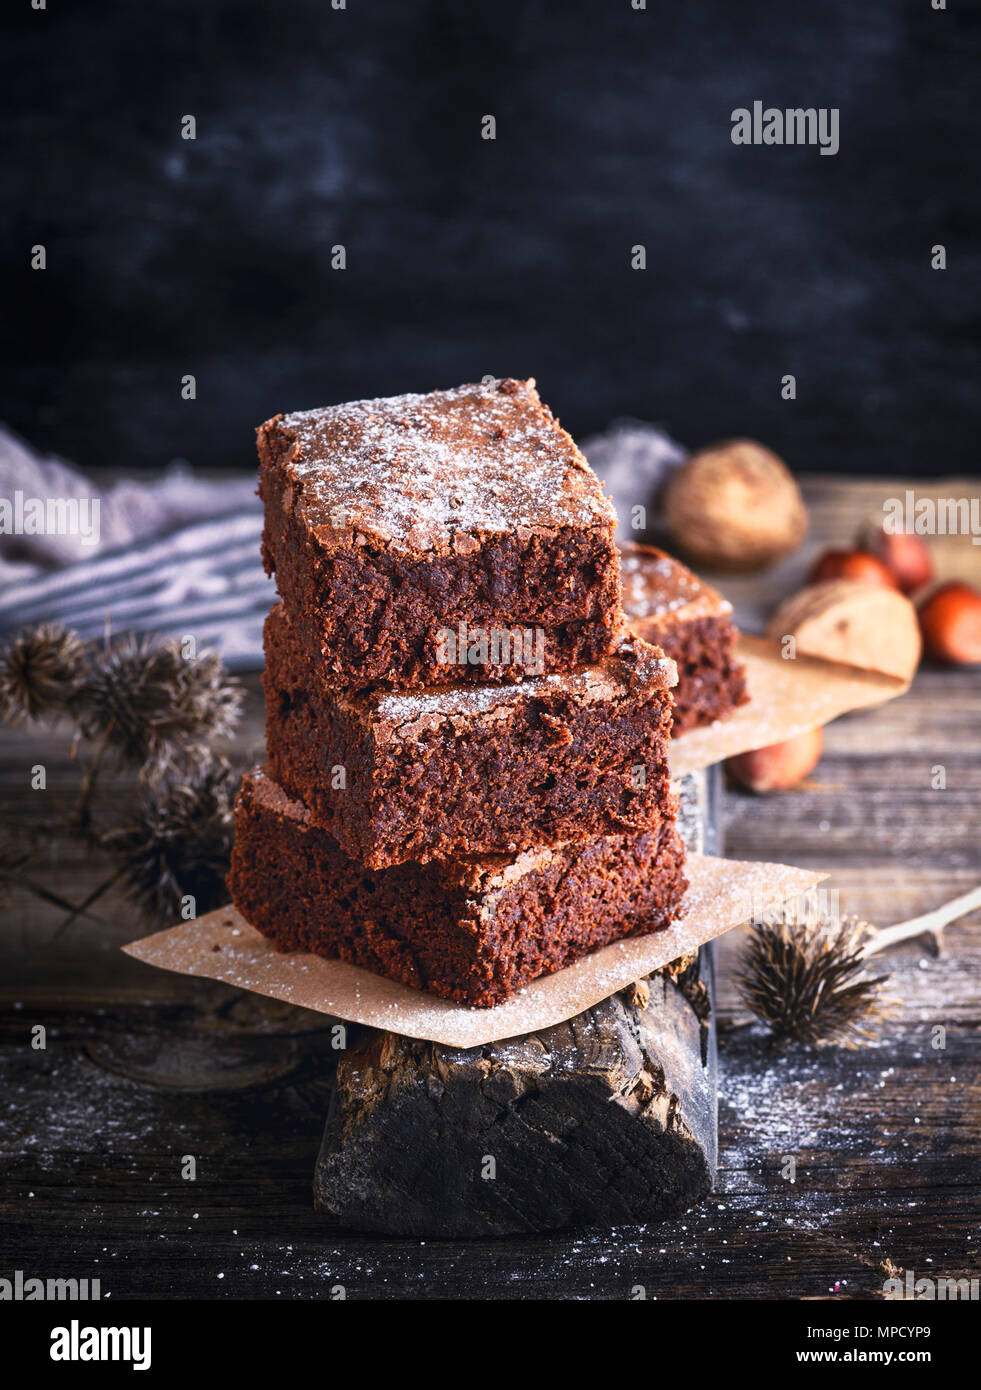 square pieces of chocolate baked brownie pie on a wooden board, close up - Stock Image